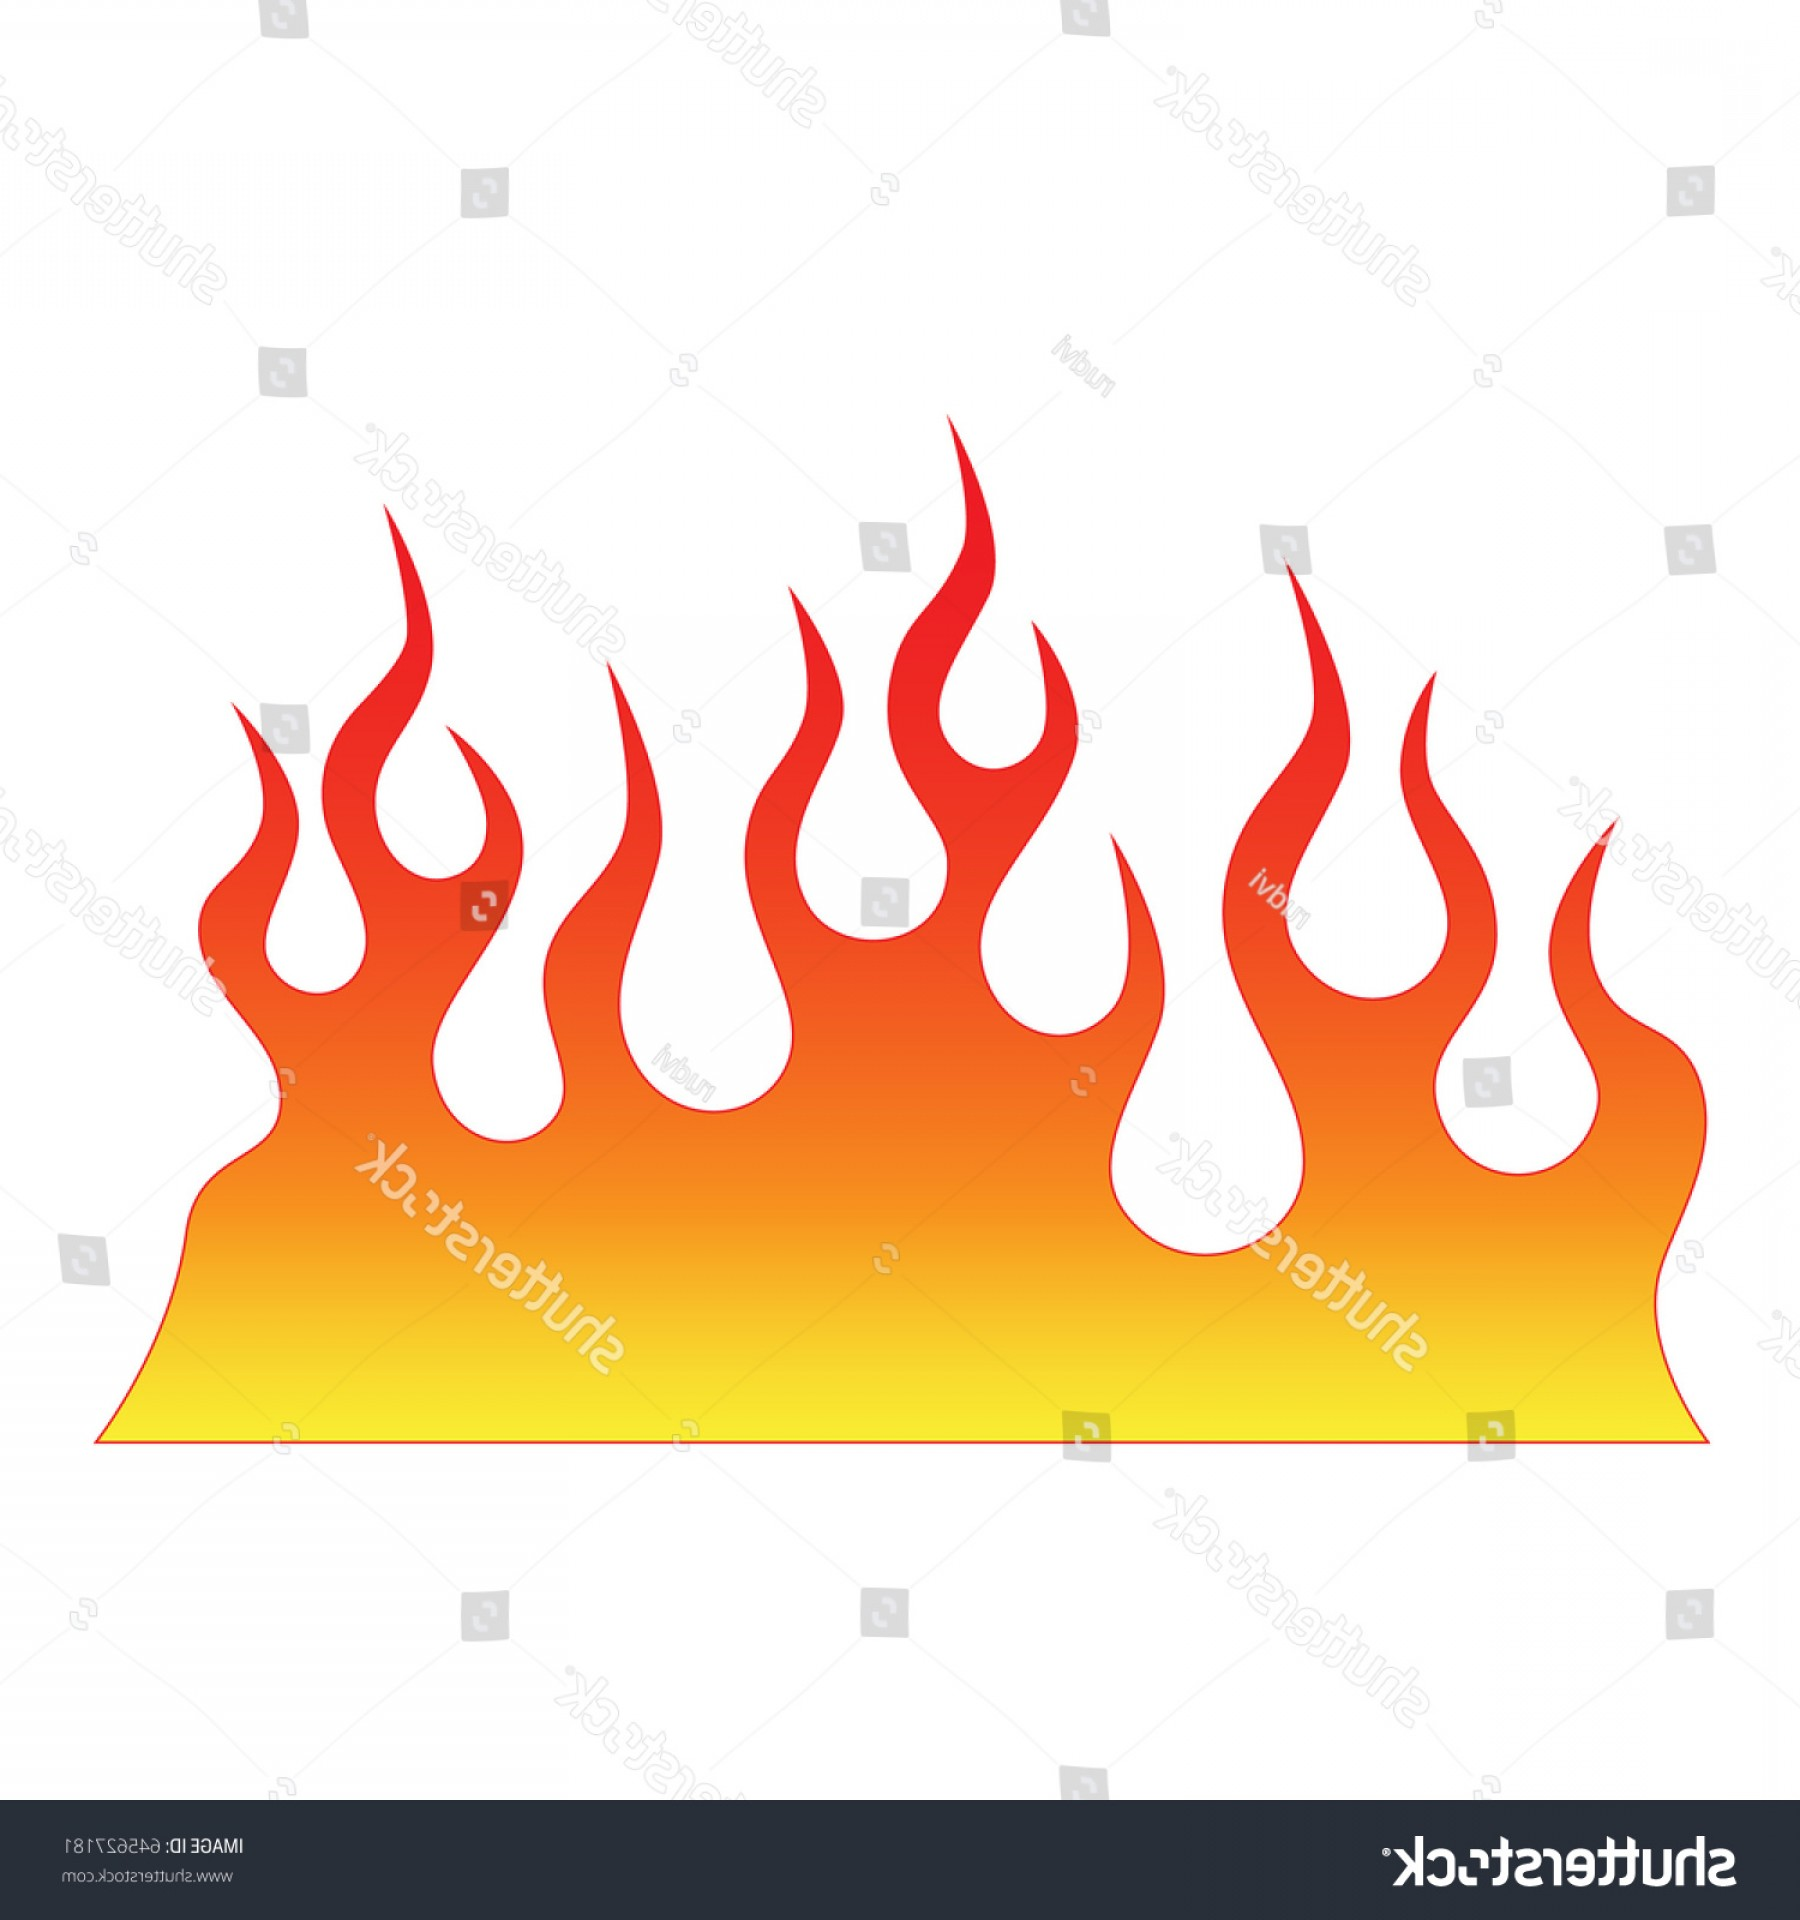 Cartoon Flame Fire Animated Blazing Flam 870133 Png Images Pngio 308 free videos of flame. cartoon flame fire animated blazing